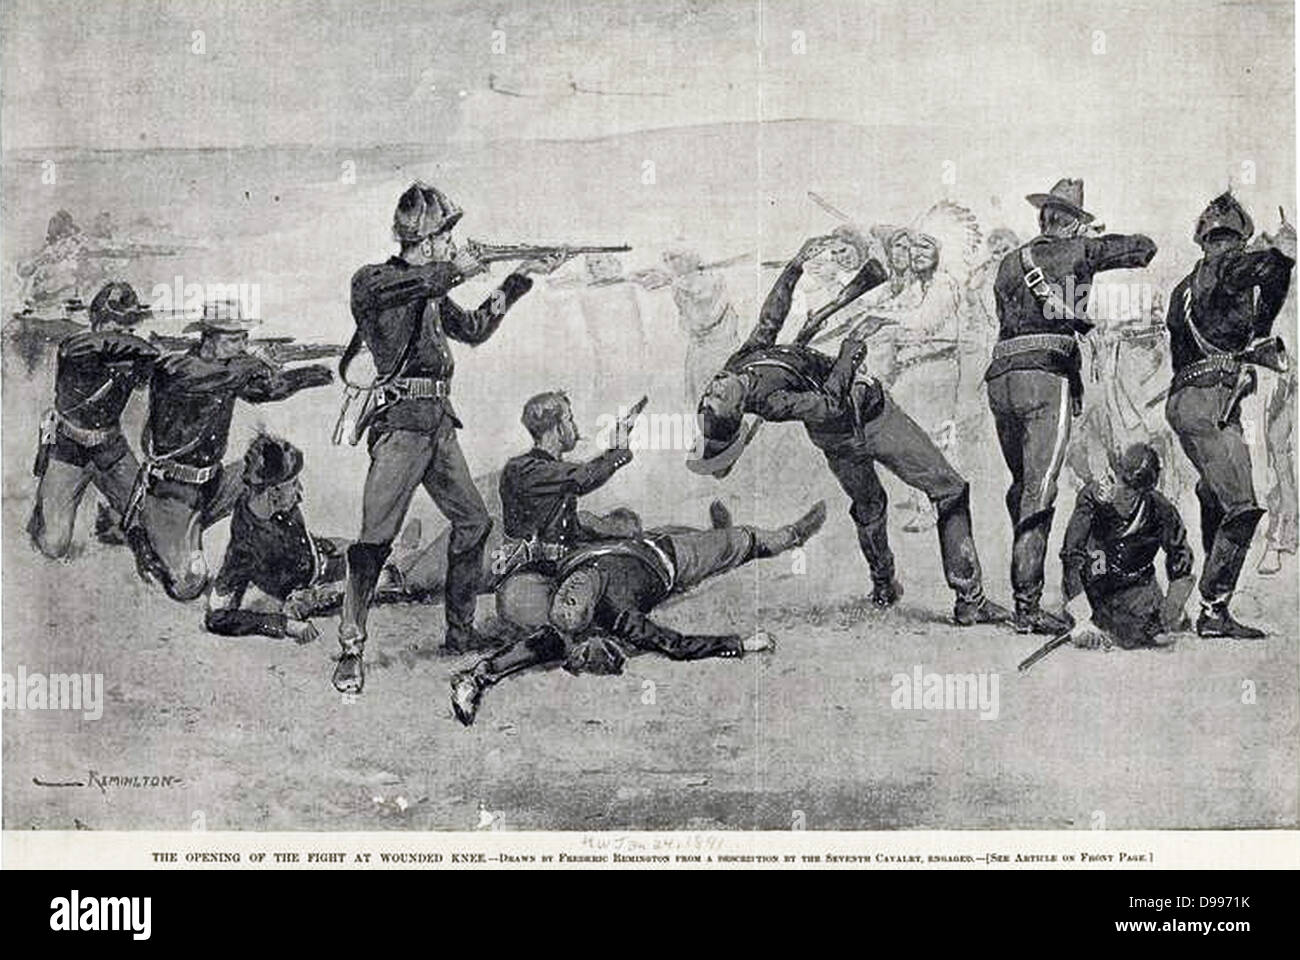 Frederic Remington 1861-1909 Artist 'The opening of the fight at Wounded Knee'. 1890 - Stock Image